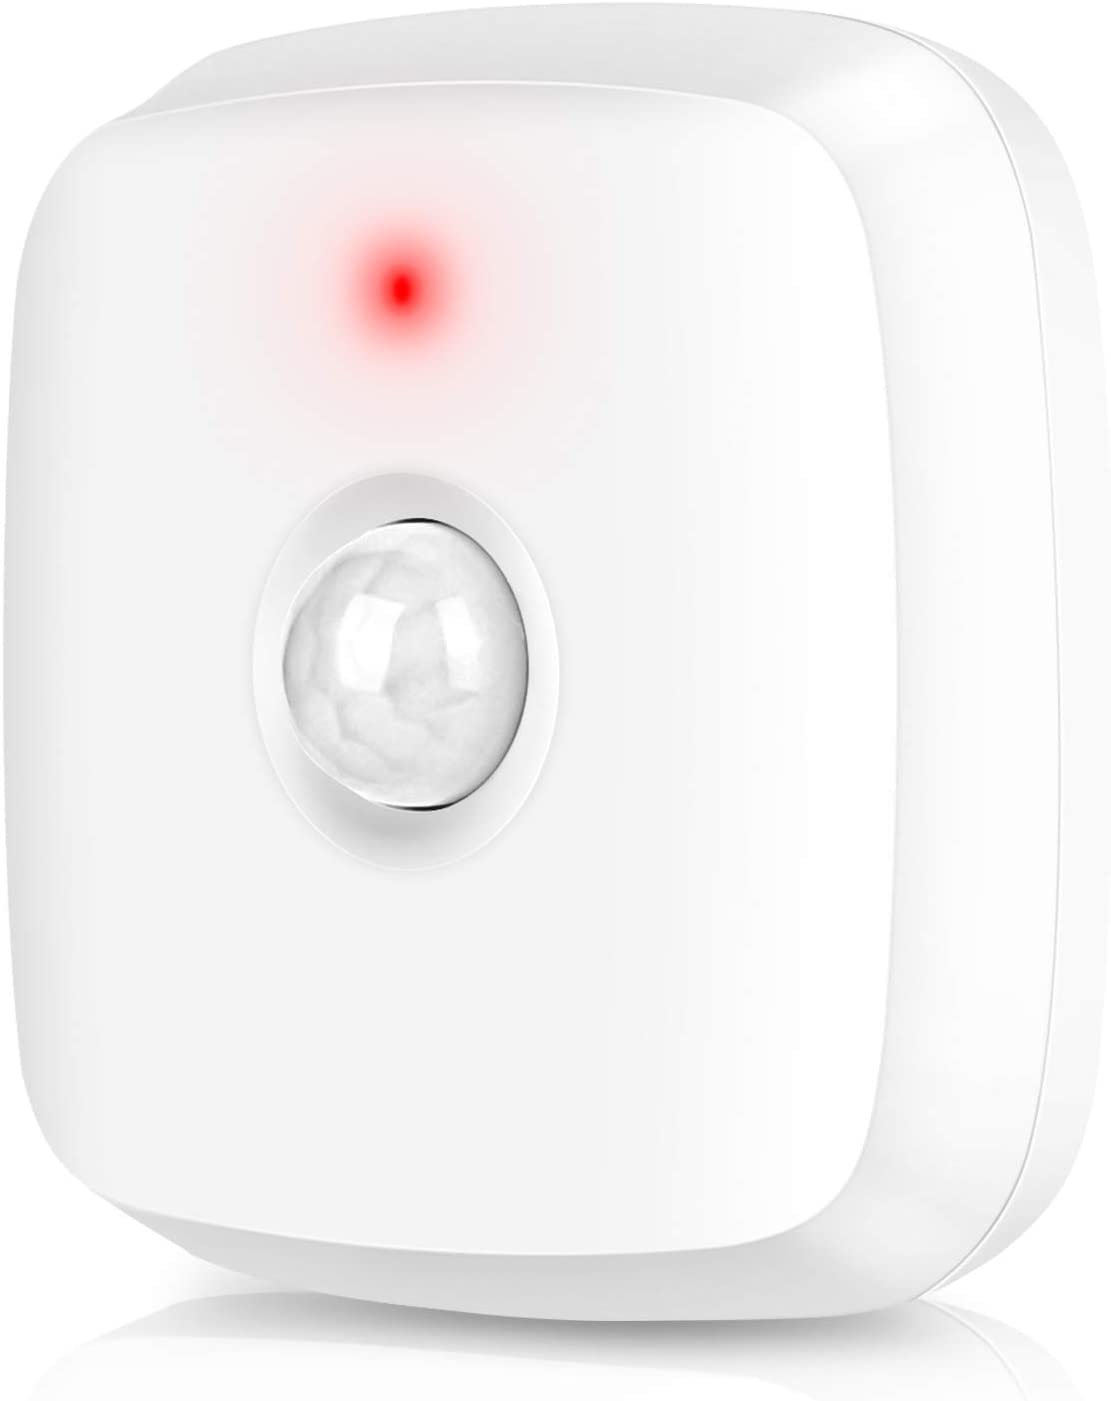 Ceiling Mount Smart Motion Sensor - Smart WiFi Motion Sensor with LED Indicator, Adjustable Angle, Compatible with The Smart Life System. Cell Phone Prompts and Alerts